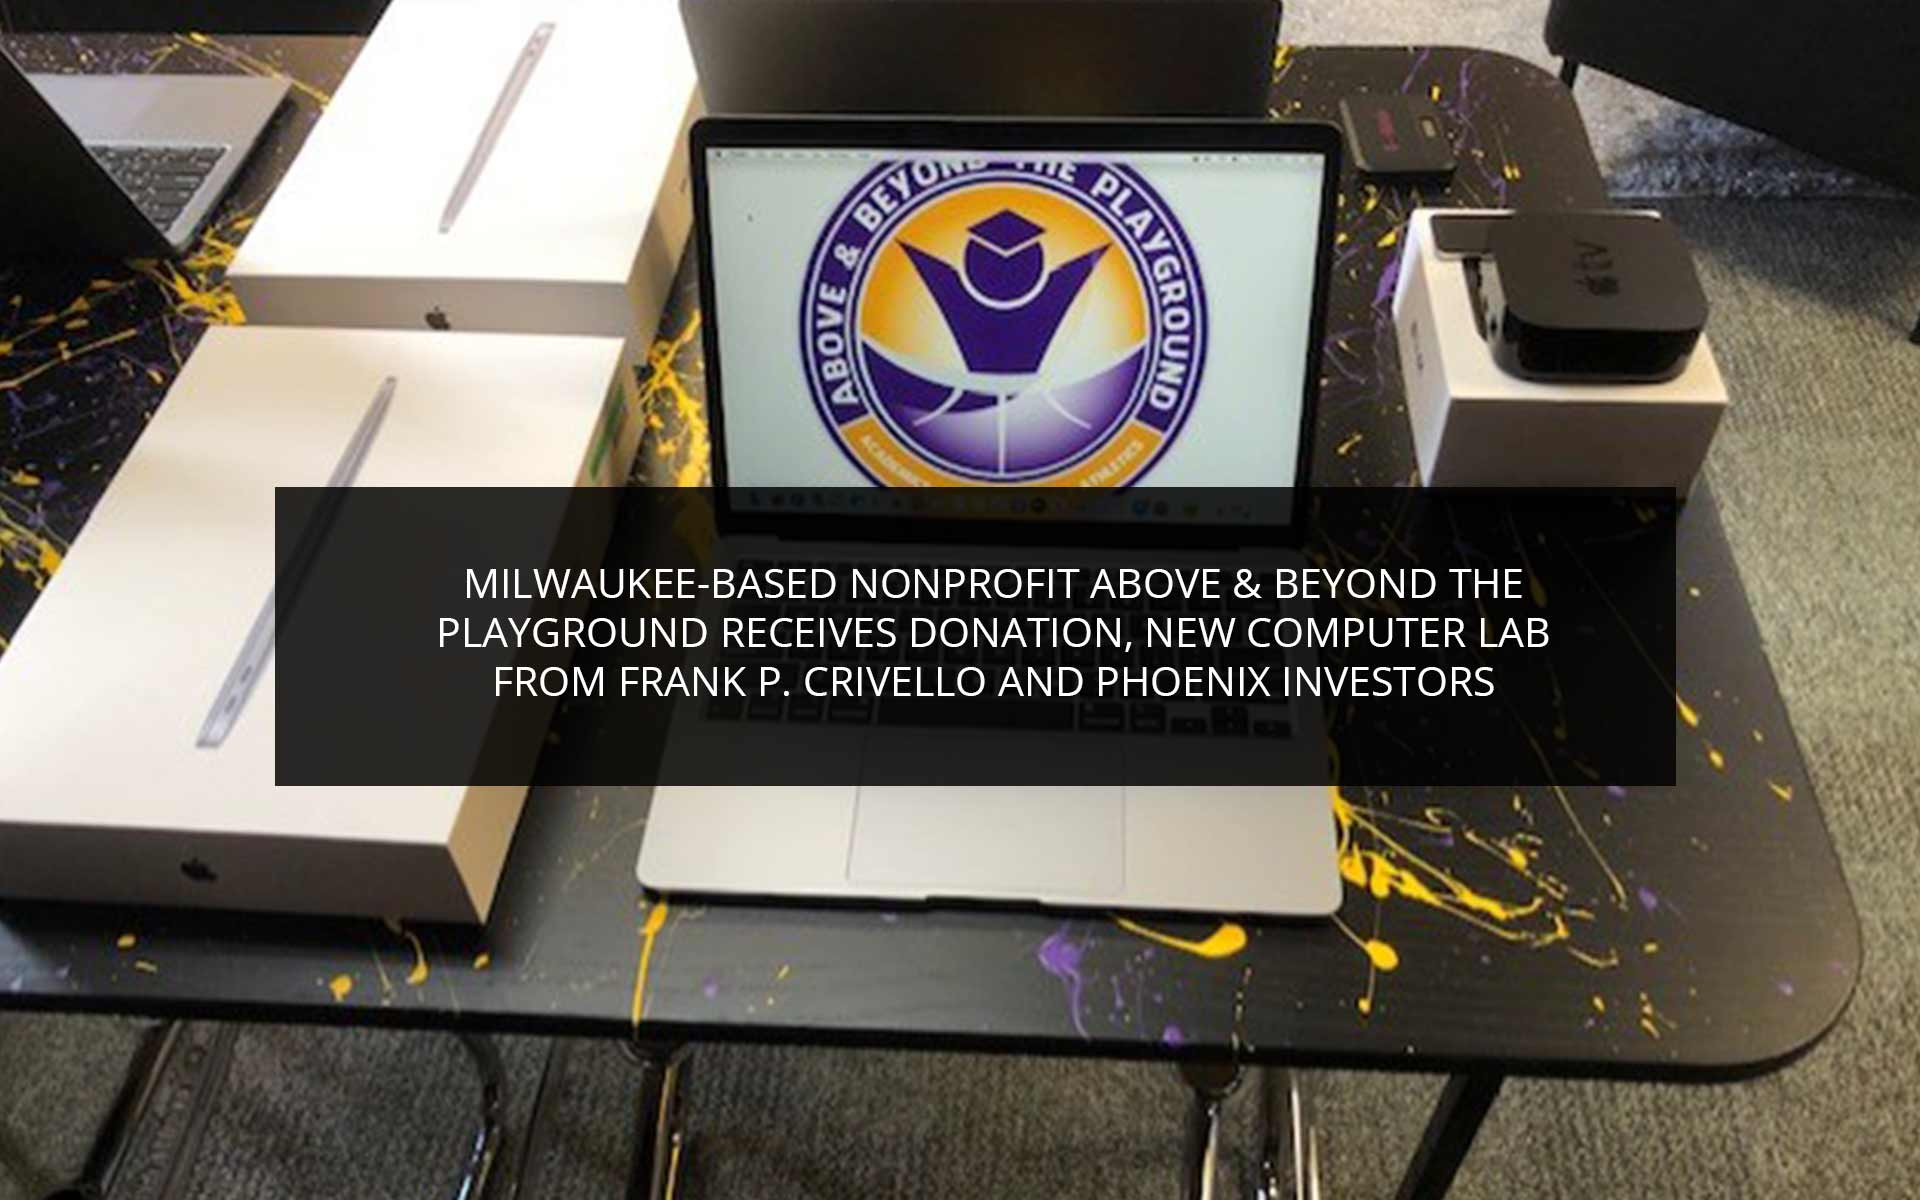 Milwaukee-Based Nonprofit Above & Beyond the Playground Receives Donation, New Computer Lab From Frank P. Crivello And Phoenix Investors